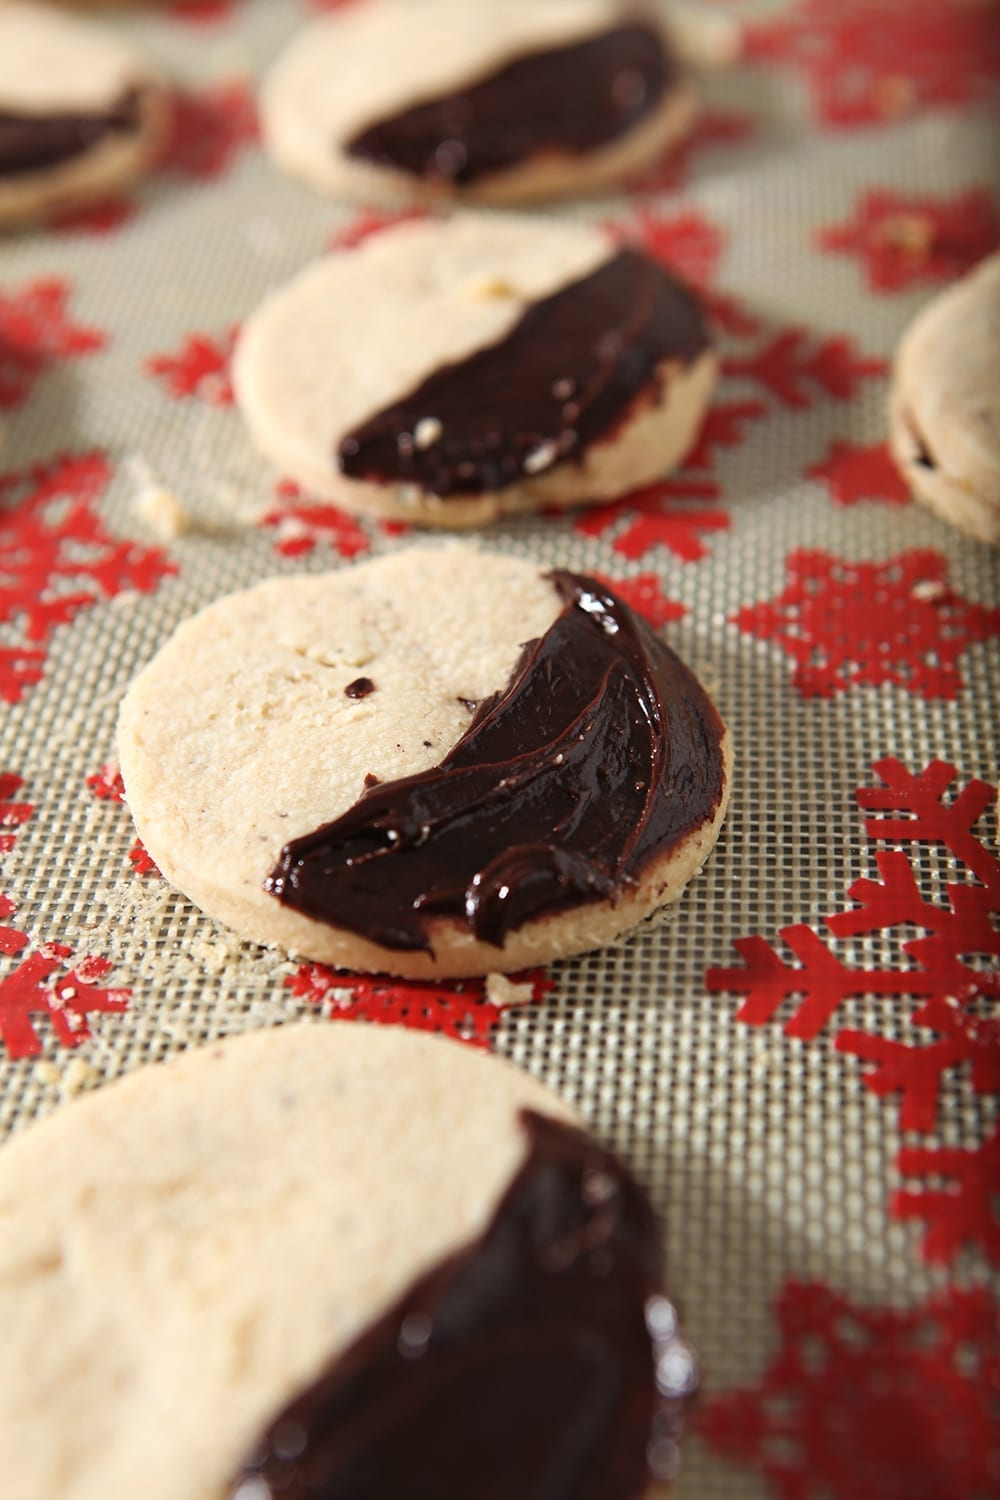 Shortbread cookies, slathered with a ganache, sit on a baking sheet